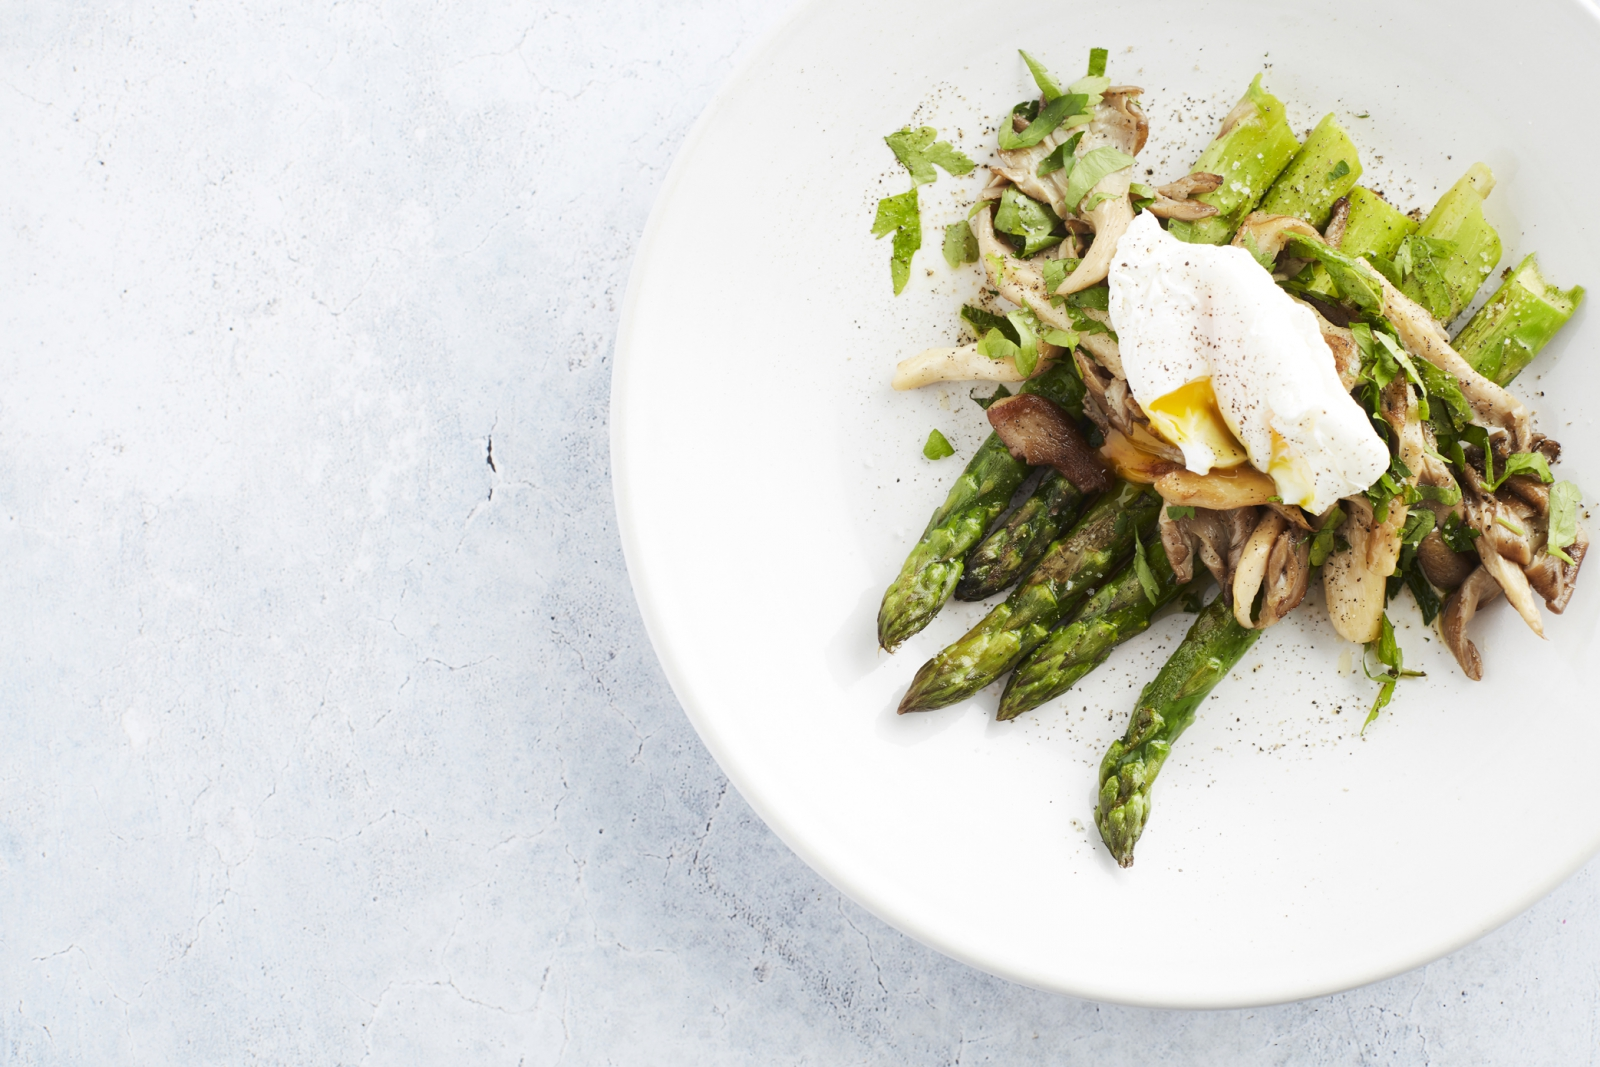 Grilled Asparagus with Mushrooms & Poached Egg - Vegetarian Keto Recipe - Start to Keto eBook